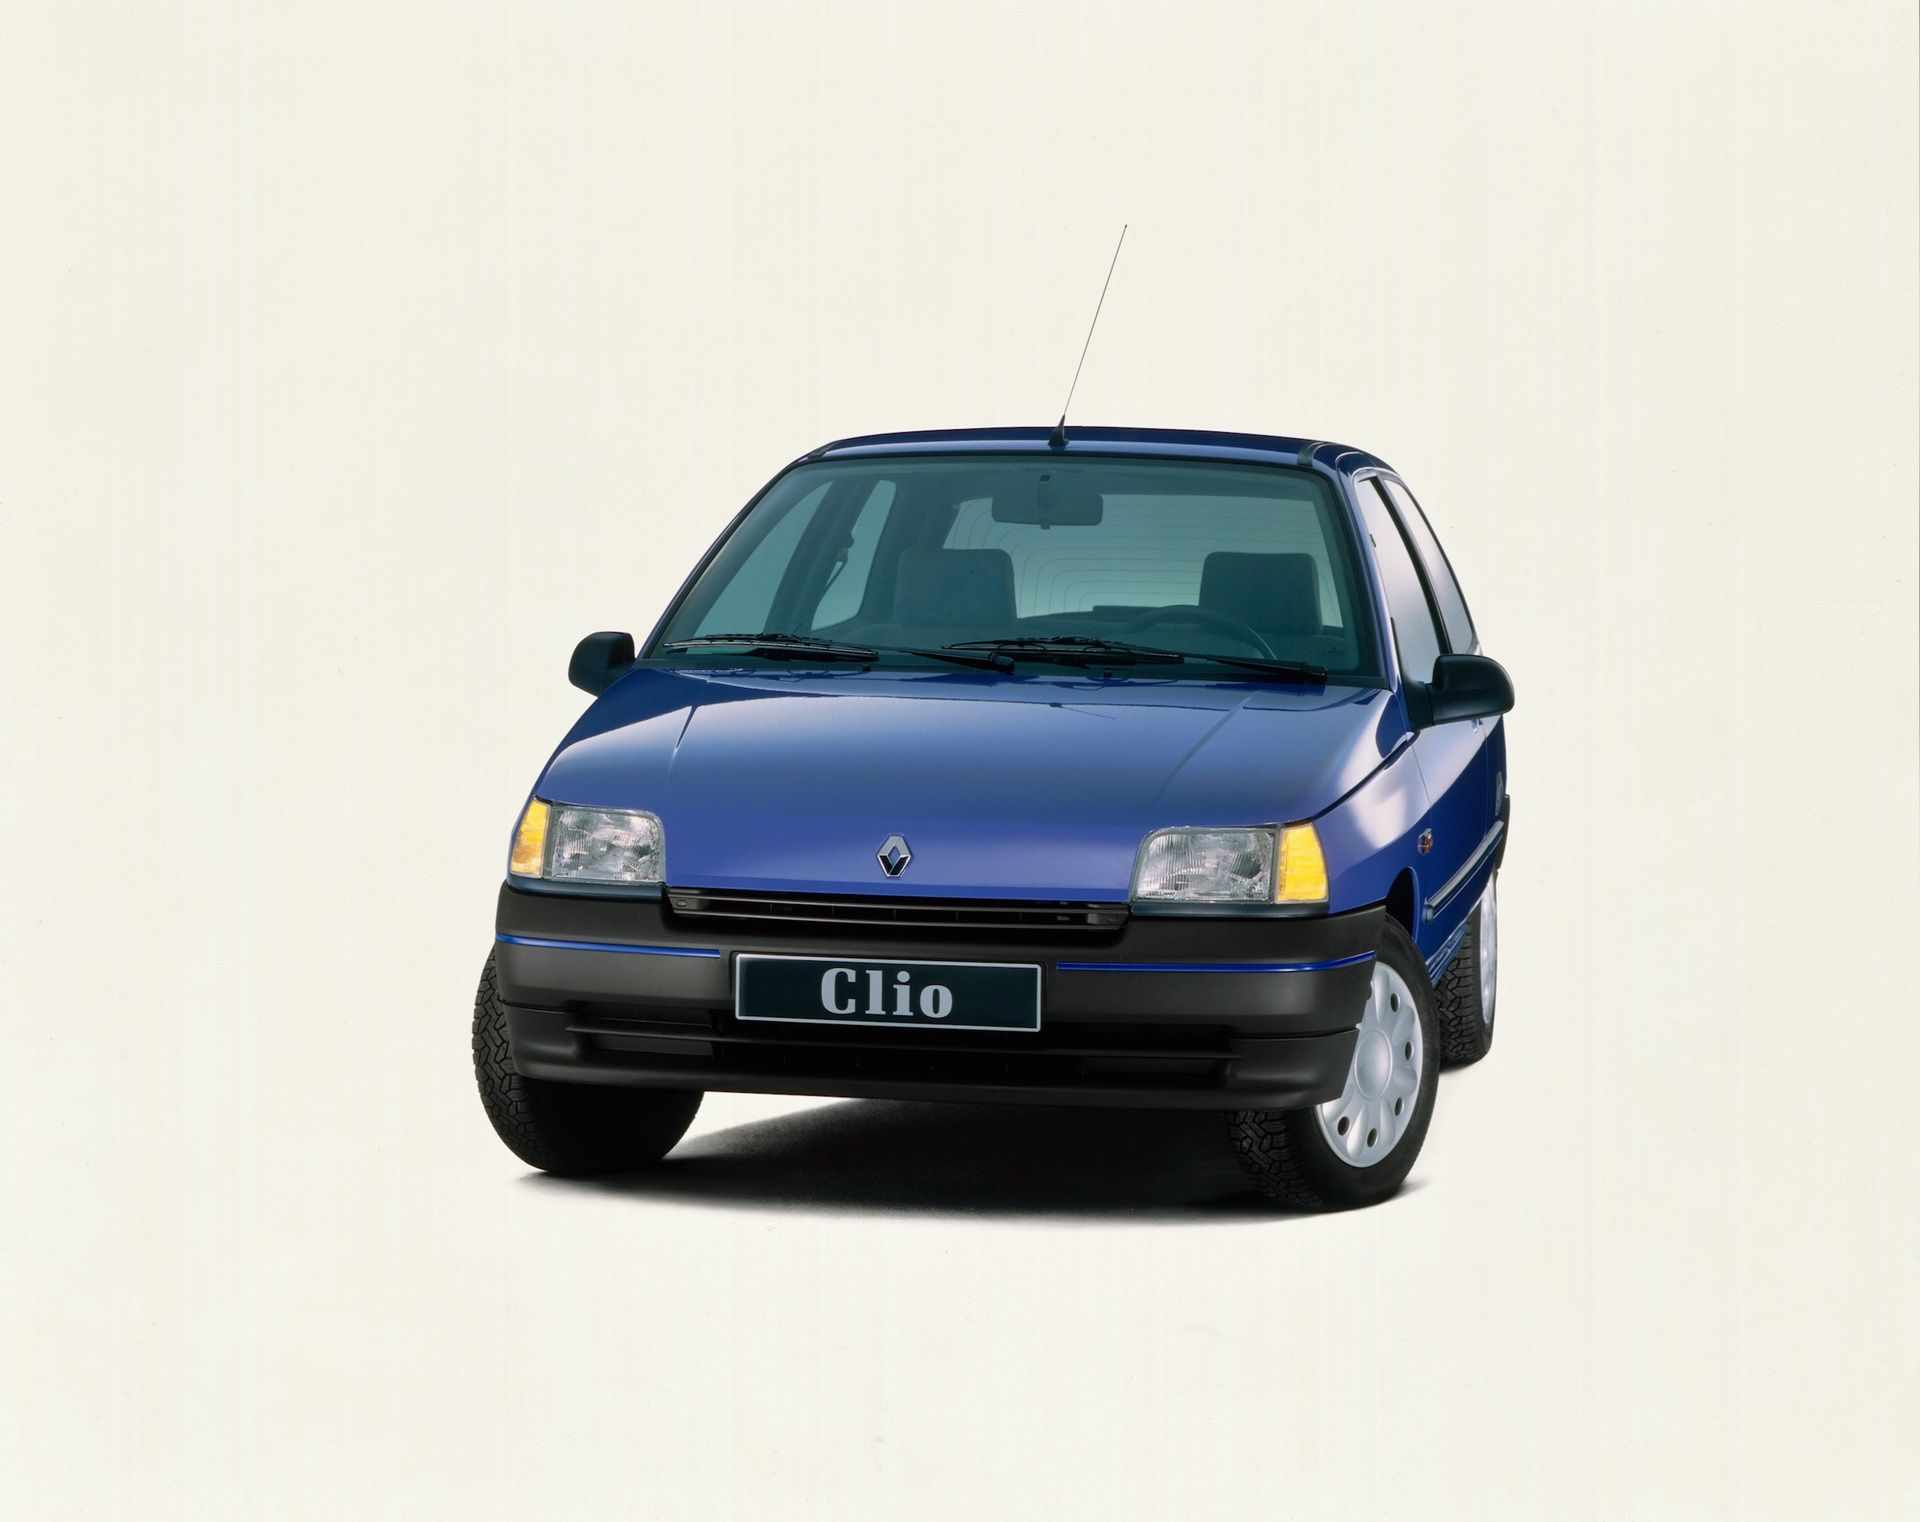 2020-30-years-of-Renault-CLIO-Renault-CLIO-I-1990-1999-16